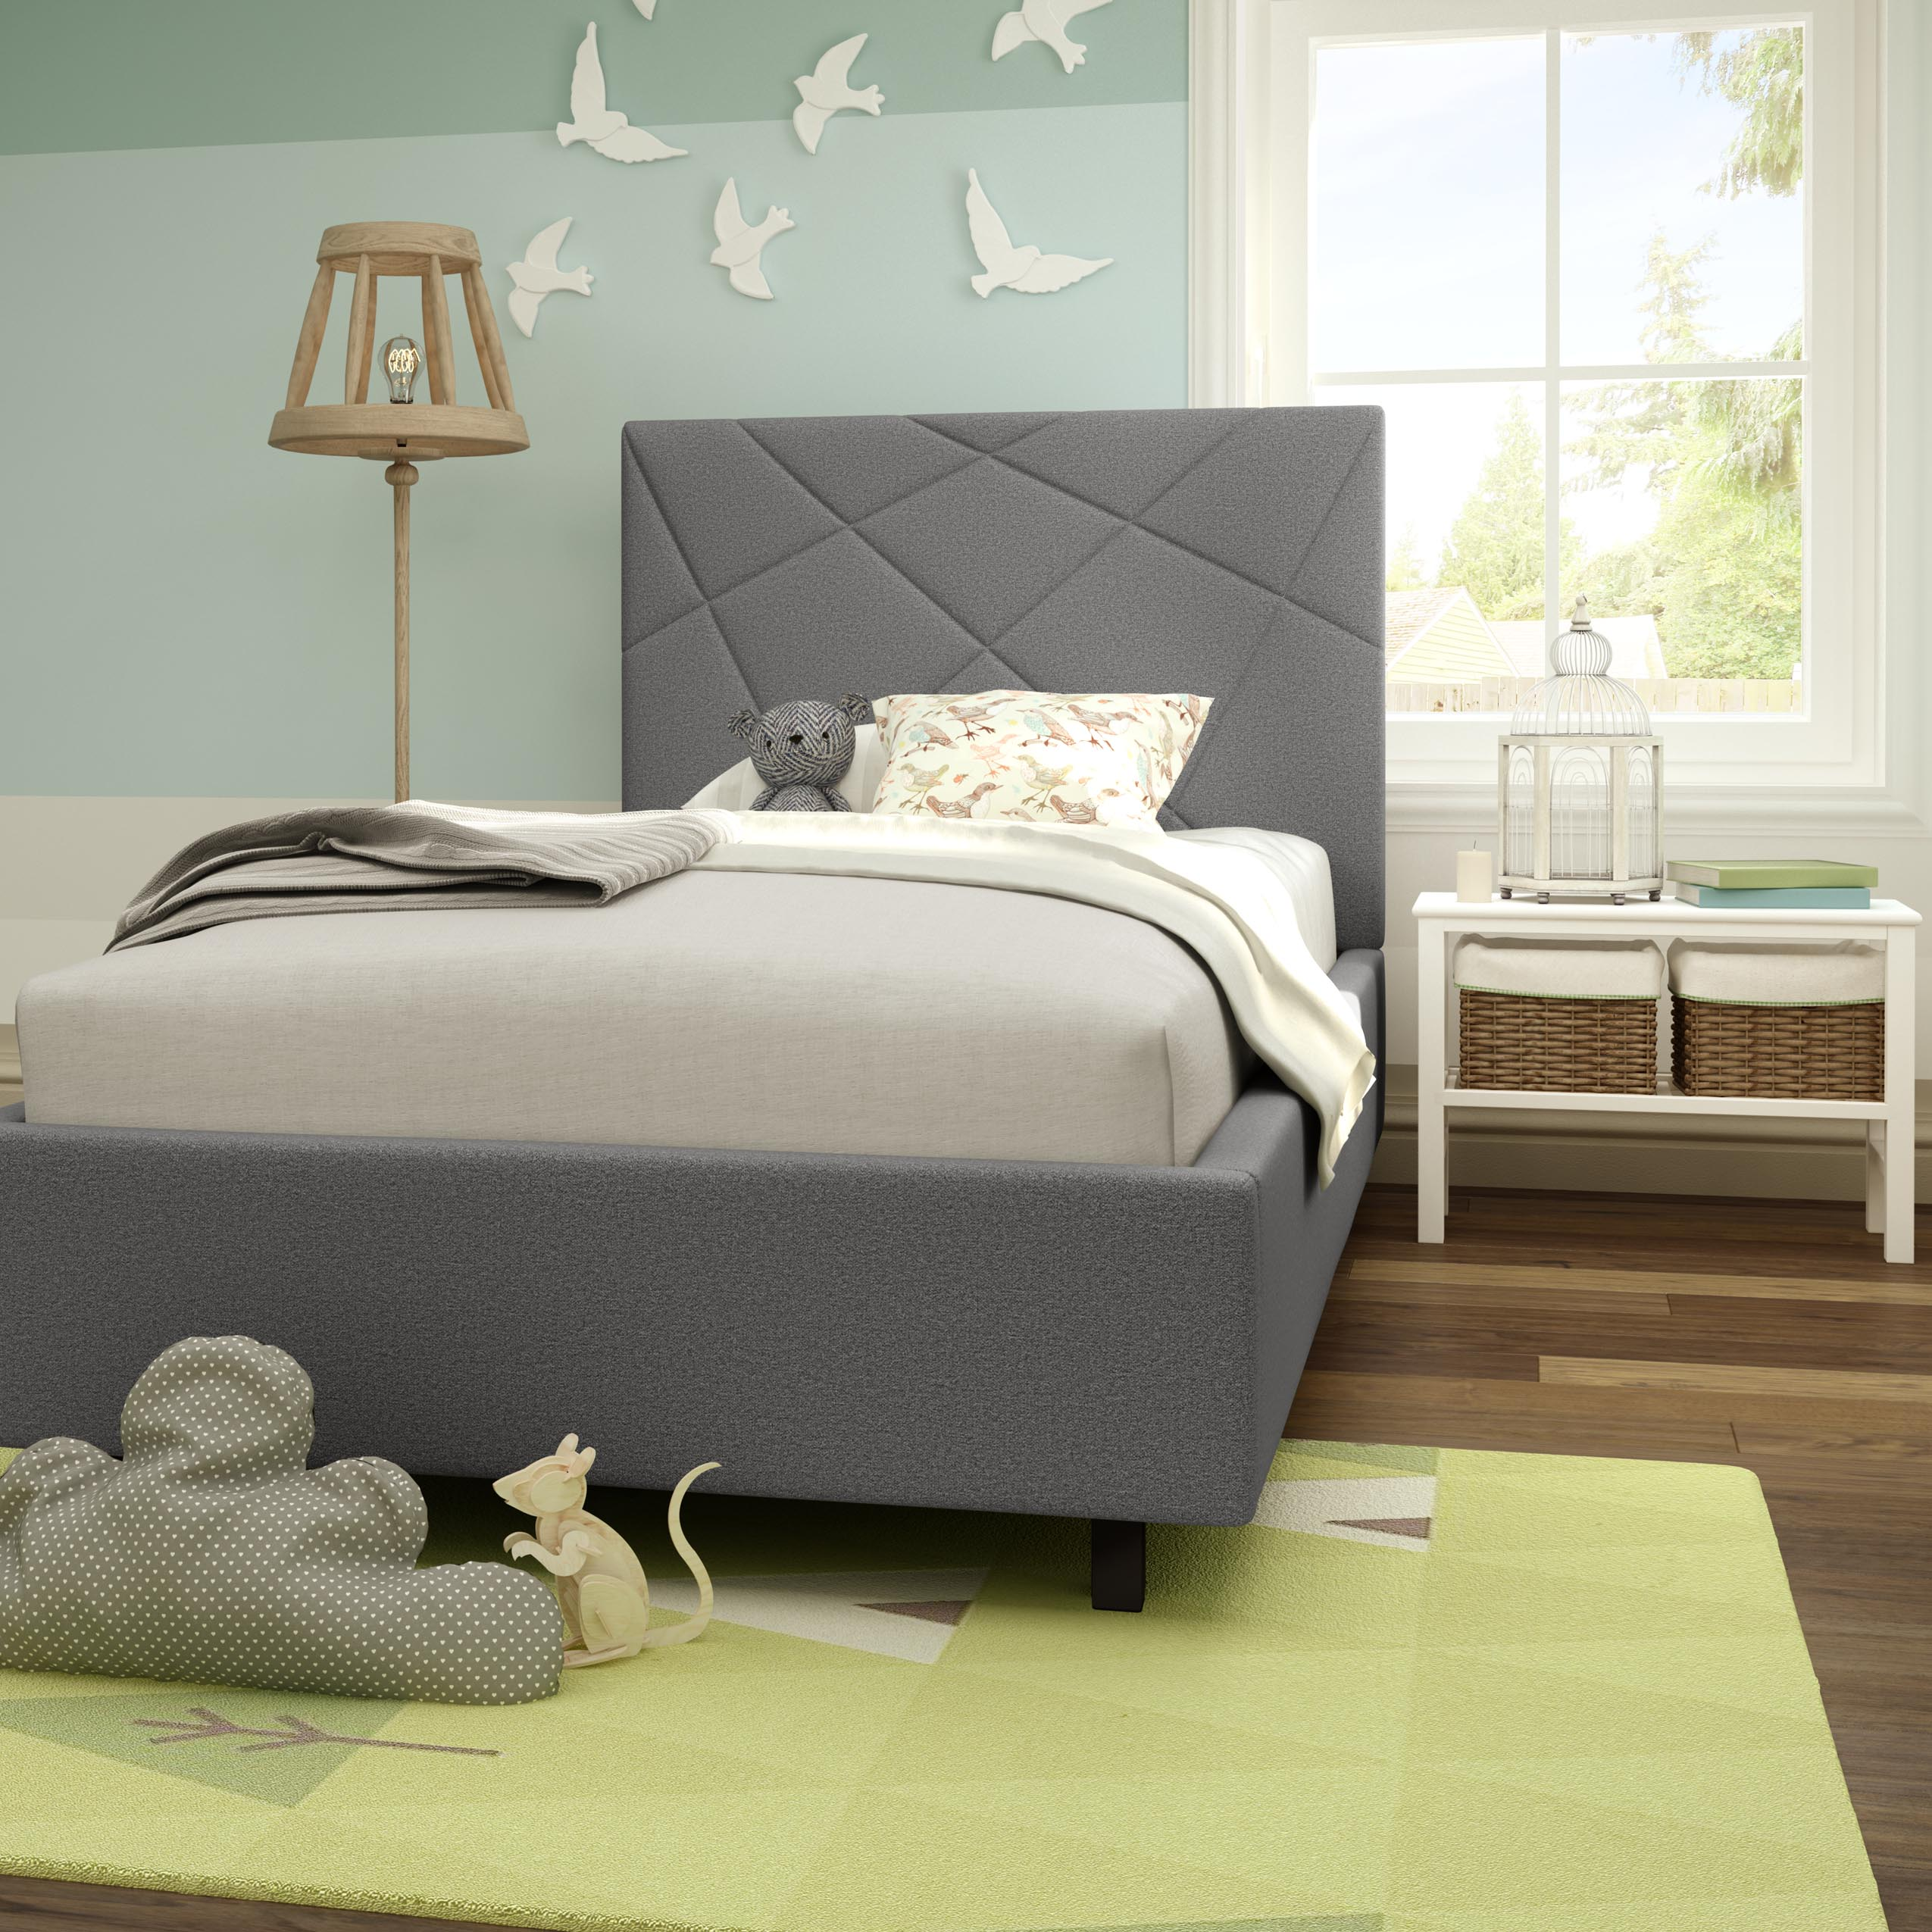 Nanaimo Bed by Amisco